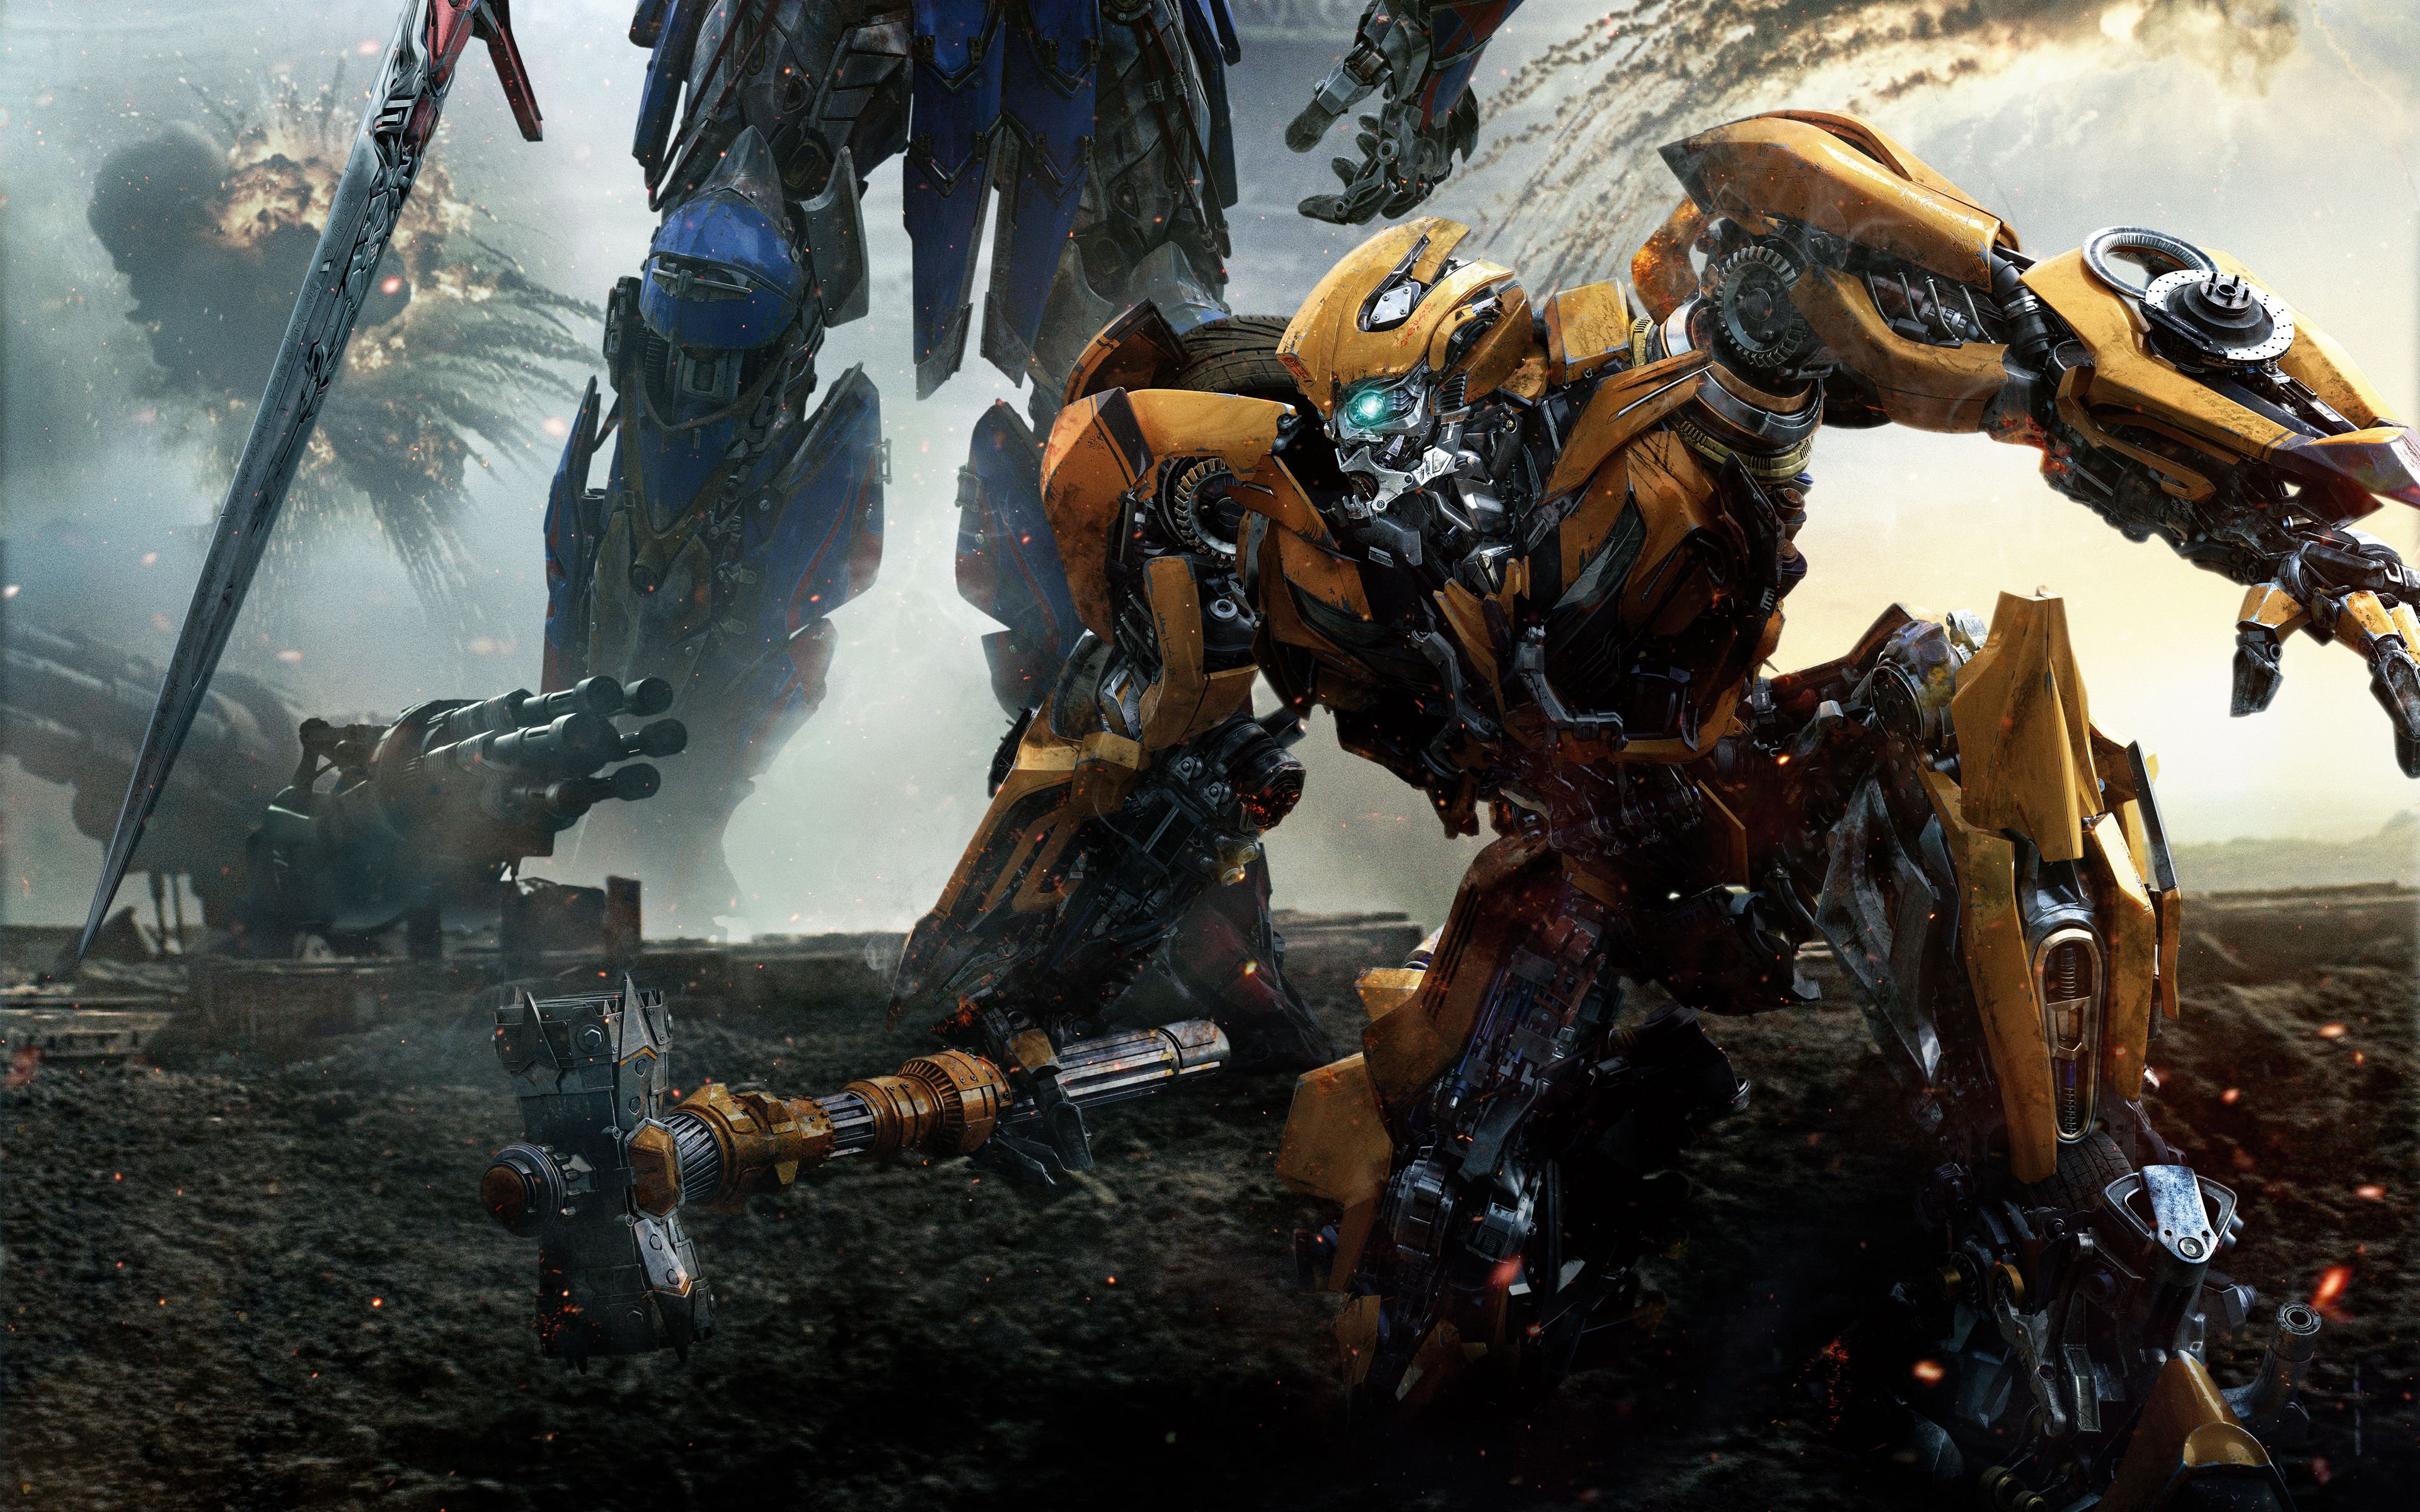 Bumblebee Transformers The Last Knight Wallpapers